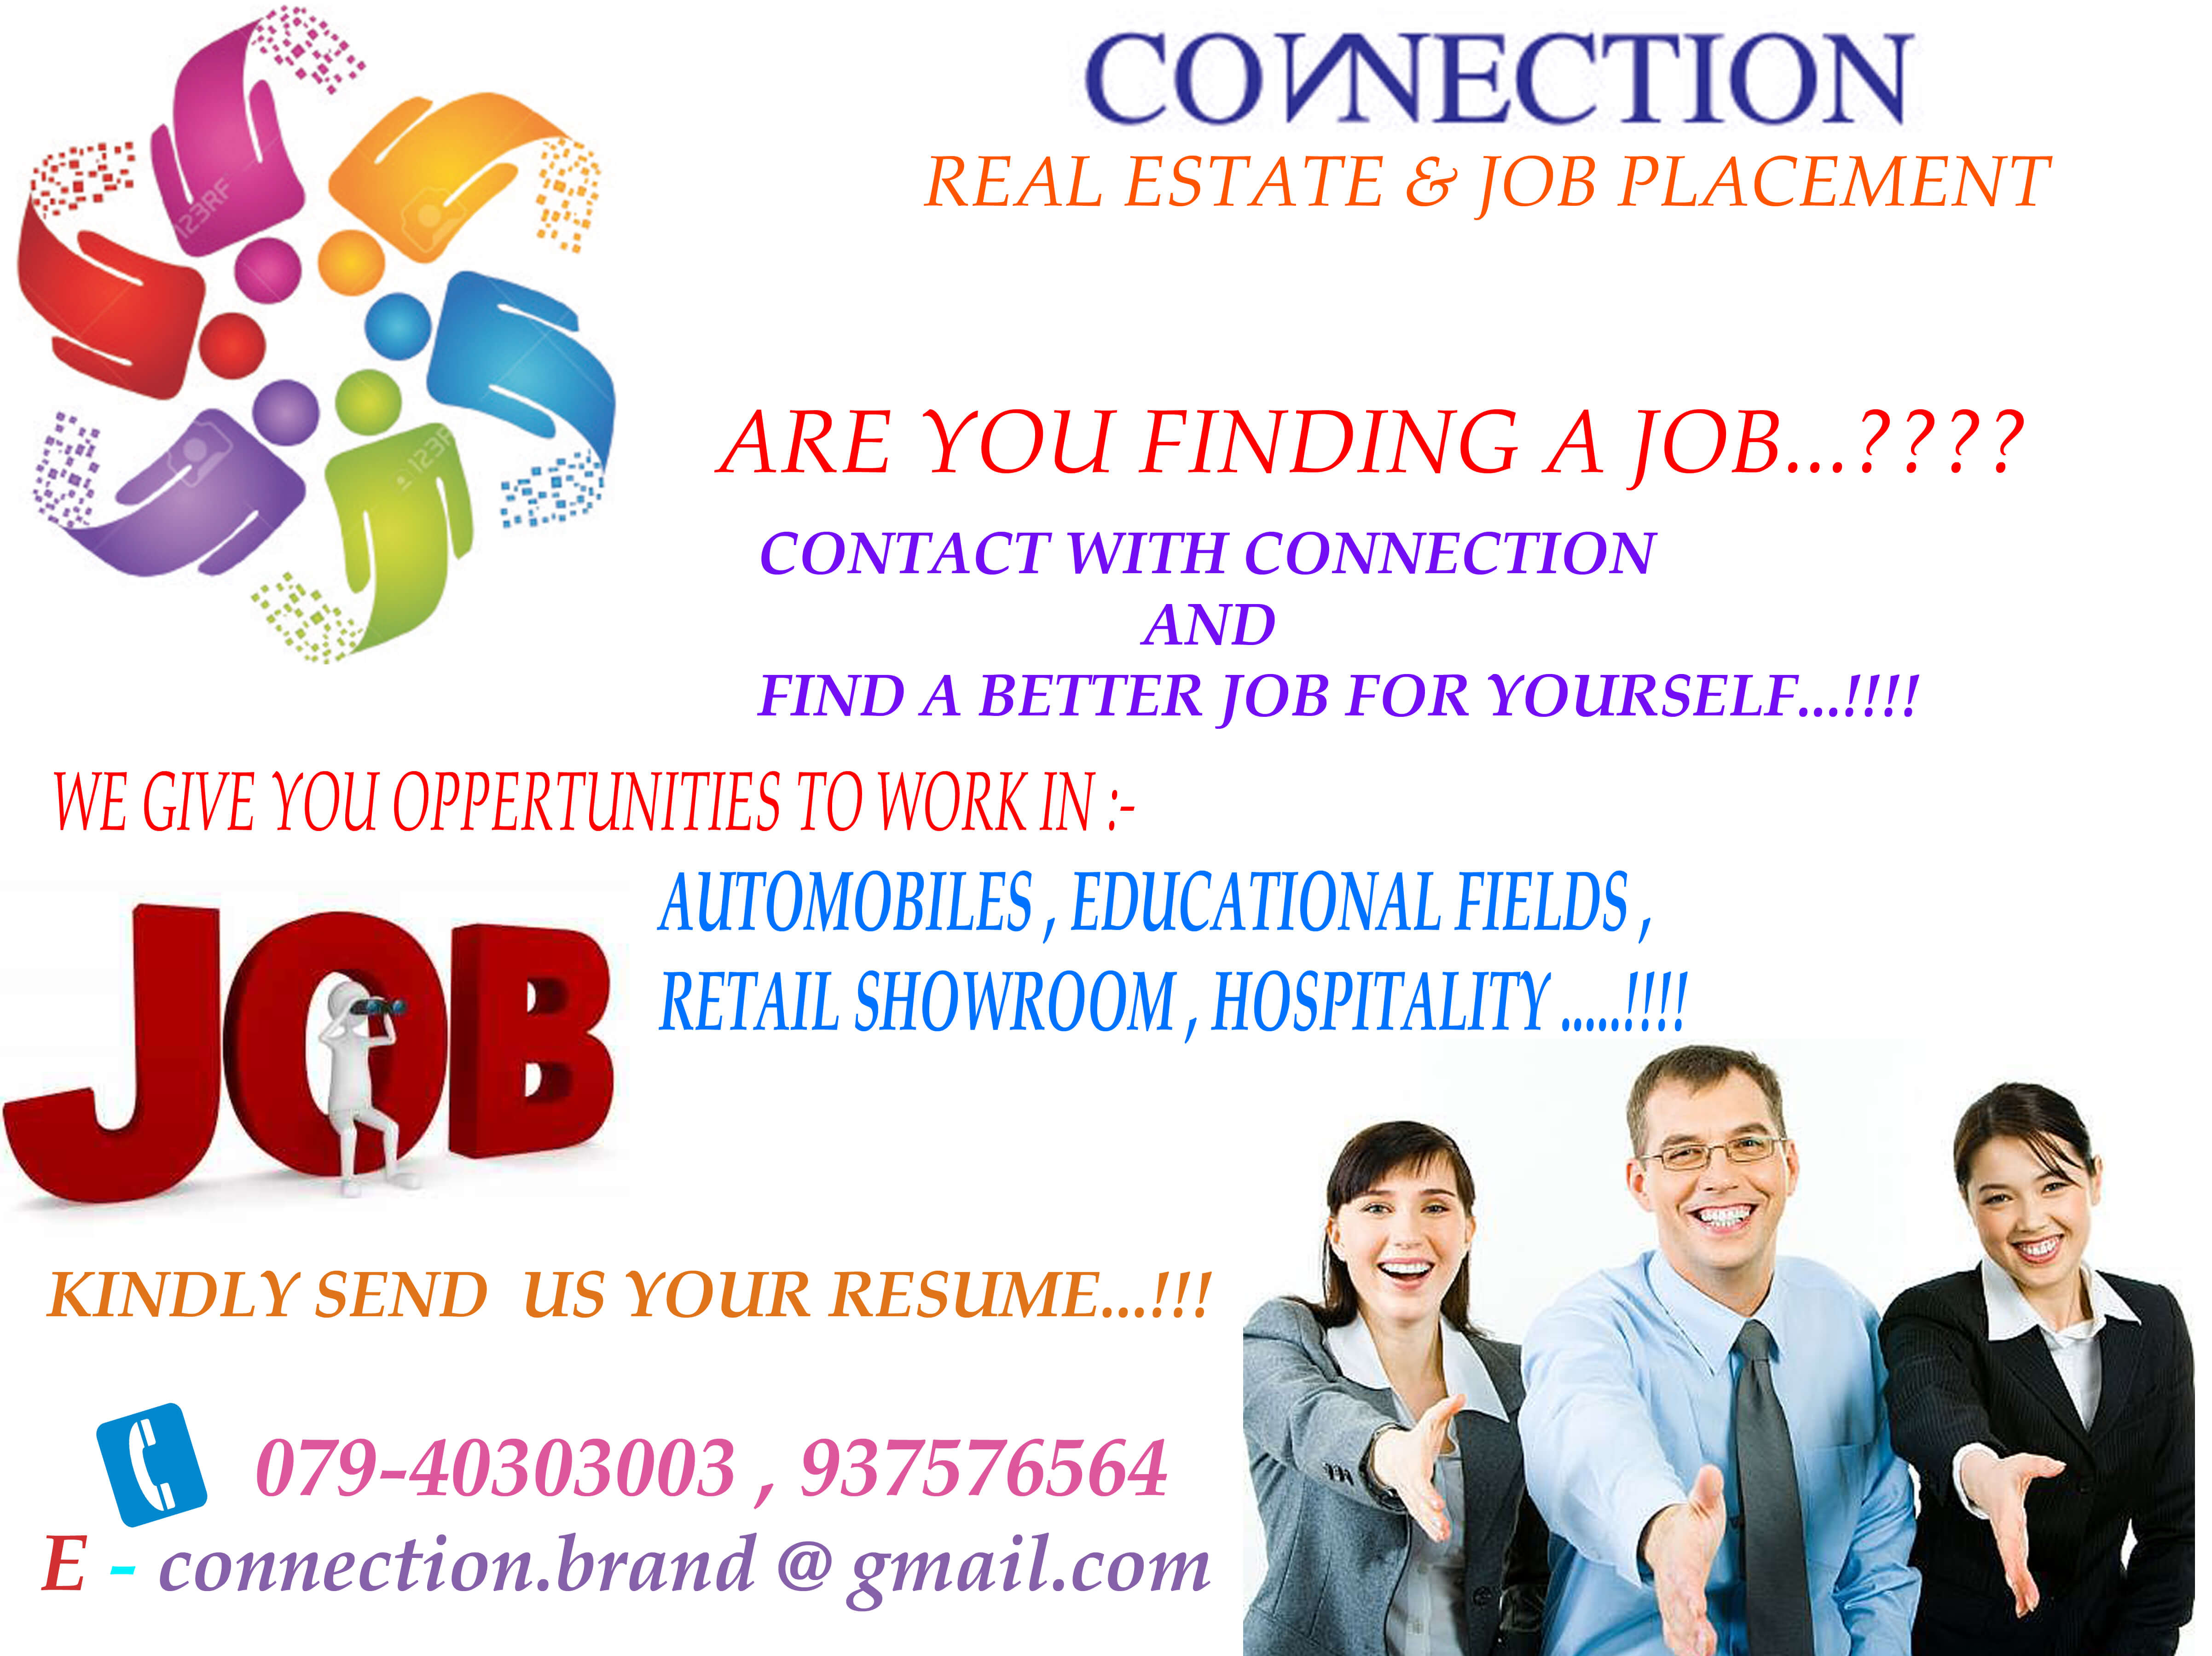 We are The Leading Placement Consultant in Ahmedabad, At Connection we provide the Job in IT Industry, Banking Industry, Finance Industry, FMCG Industry in all Over India Placement.